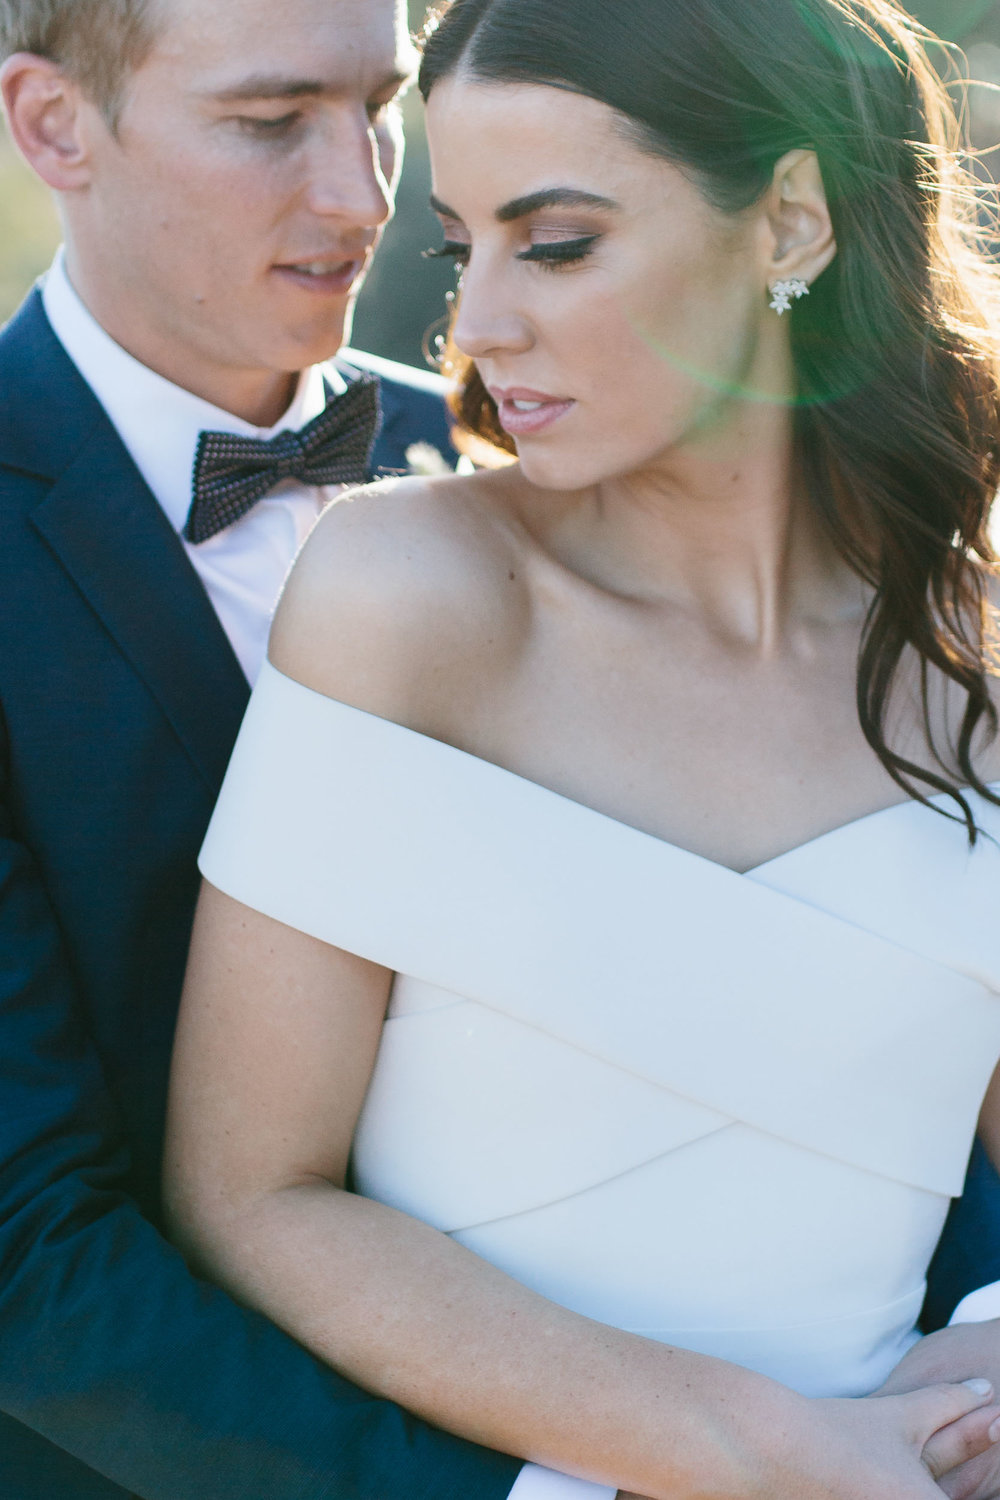 Kas-Richards-Destination-Wedding-Georgia-Young-Coutire-Briggins-Suit-South-Australian-Riverland-Wedding-672.jpg